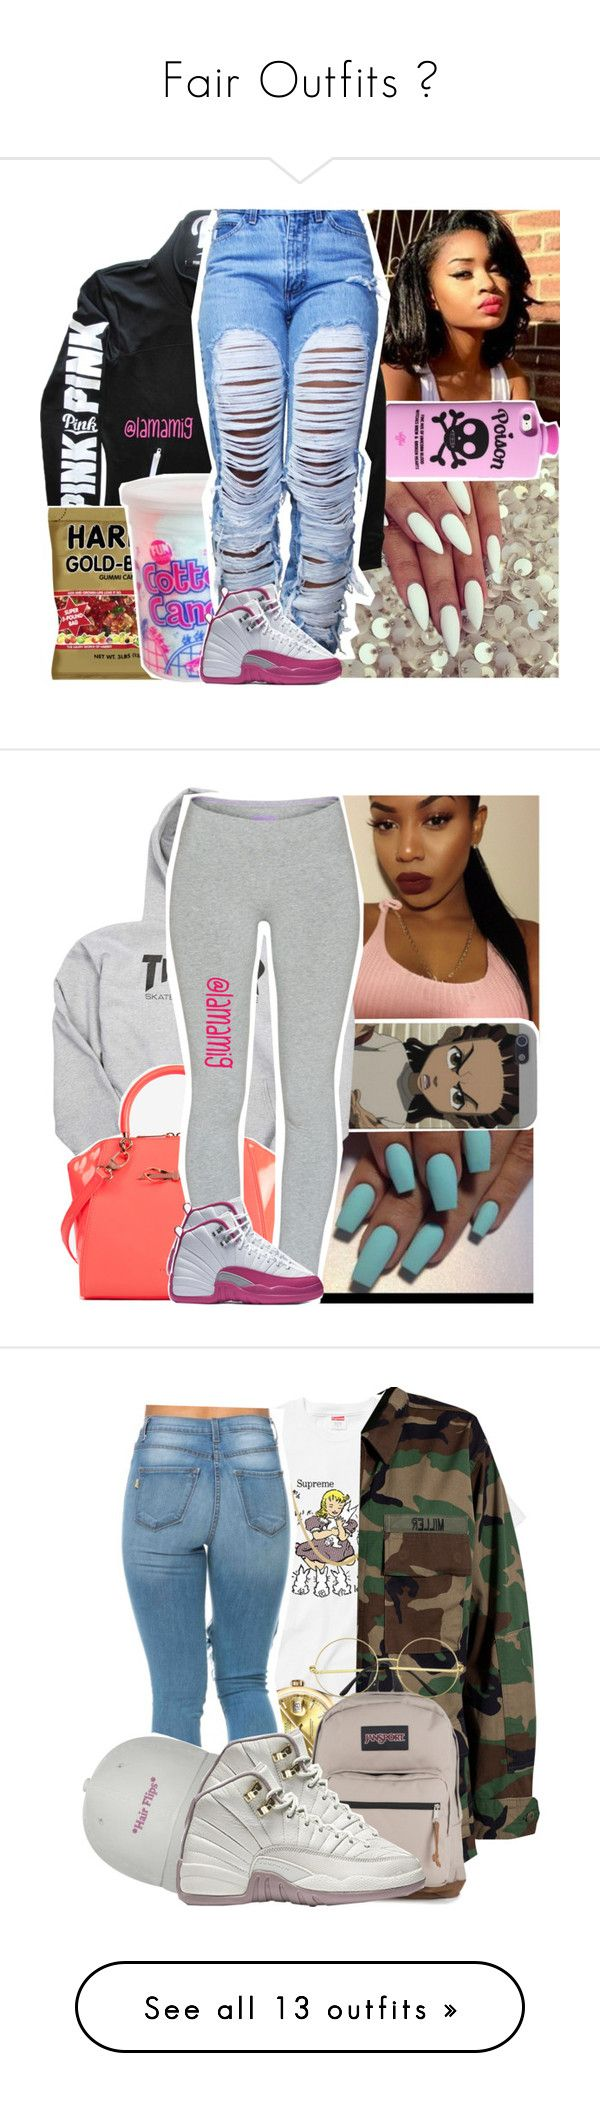 """""""Fair Outfits """" by shamyadanyel ❤ liked on Polyvore featuring Valfré, Victoria's Secret, Cotton Candy, NIKE, Ted Baker, TNA, Modström, Rolex, JanSport and Puma"""